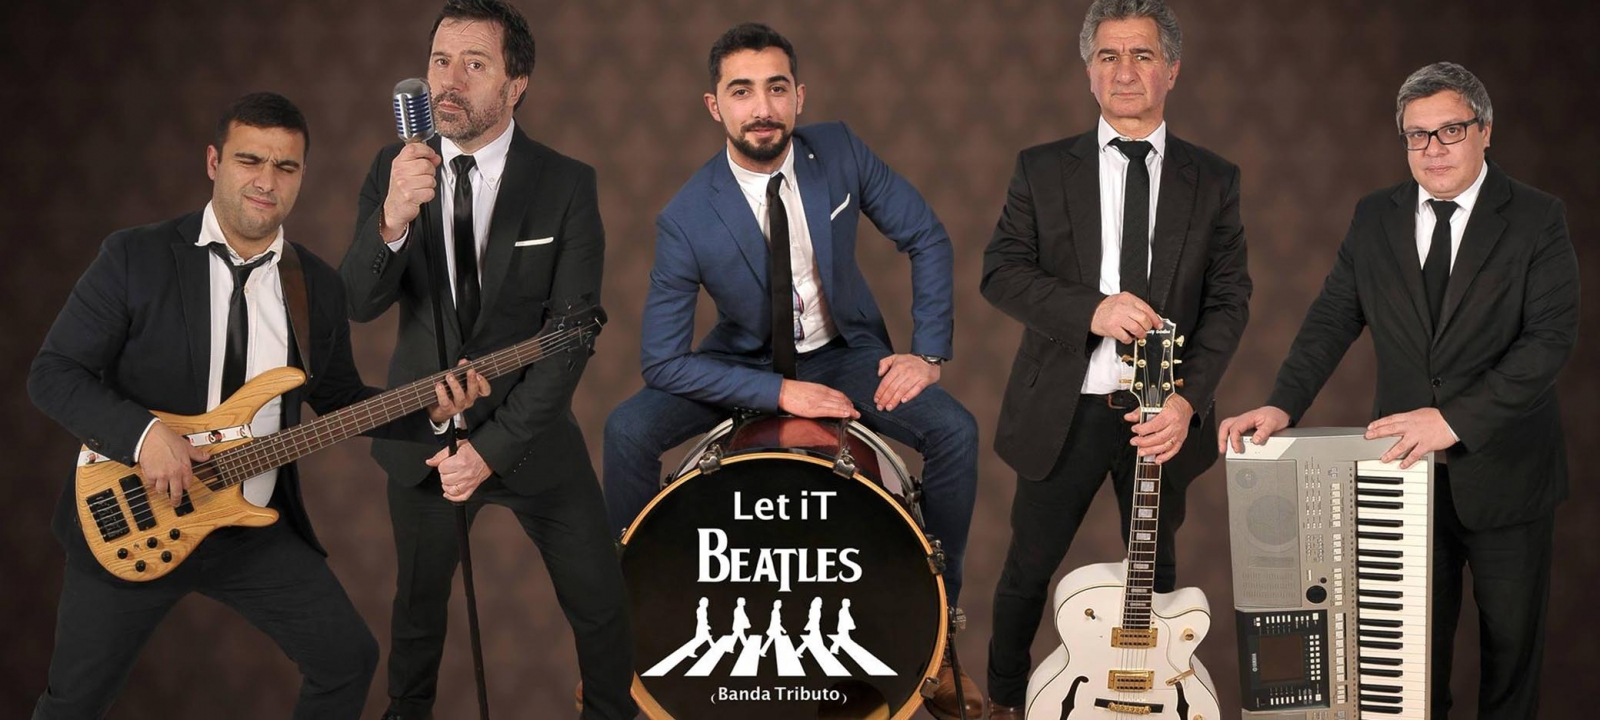 """Let it Beatles"" no Auditório Municipal"